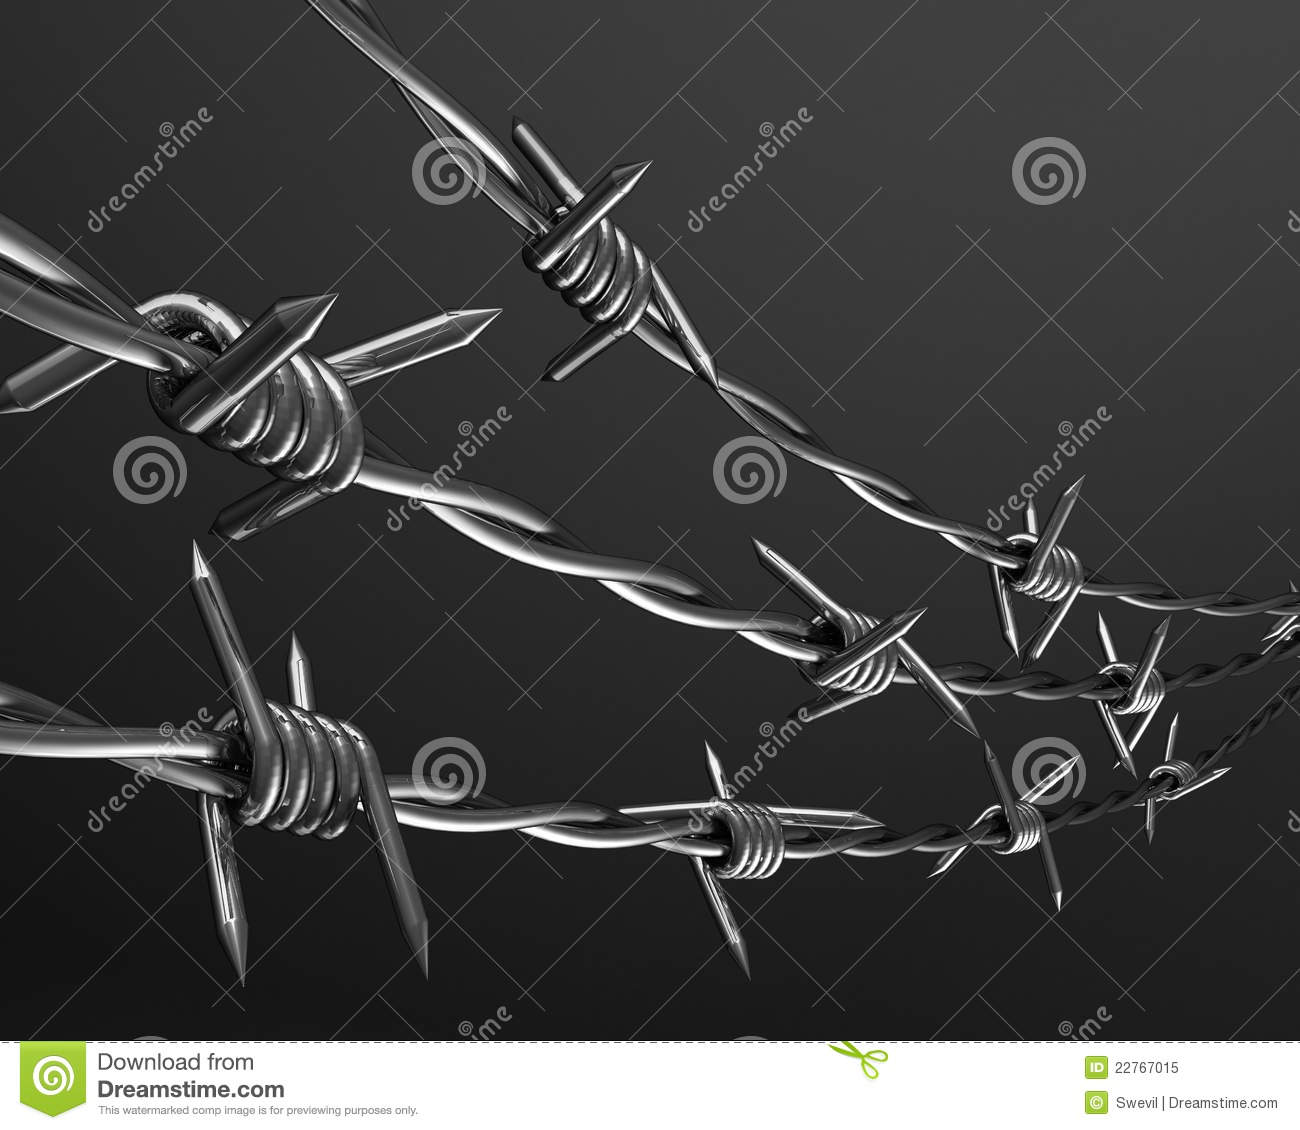 D barbed wire background royalty free stock photo image